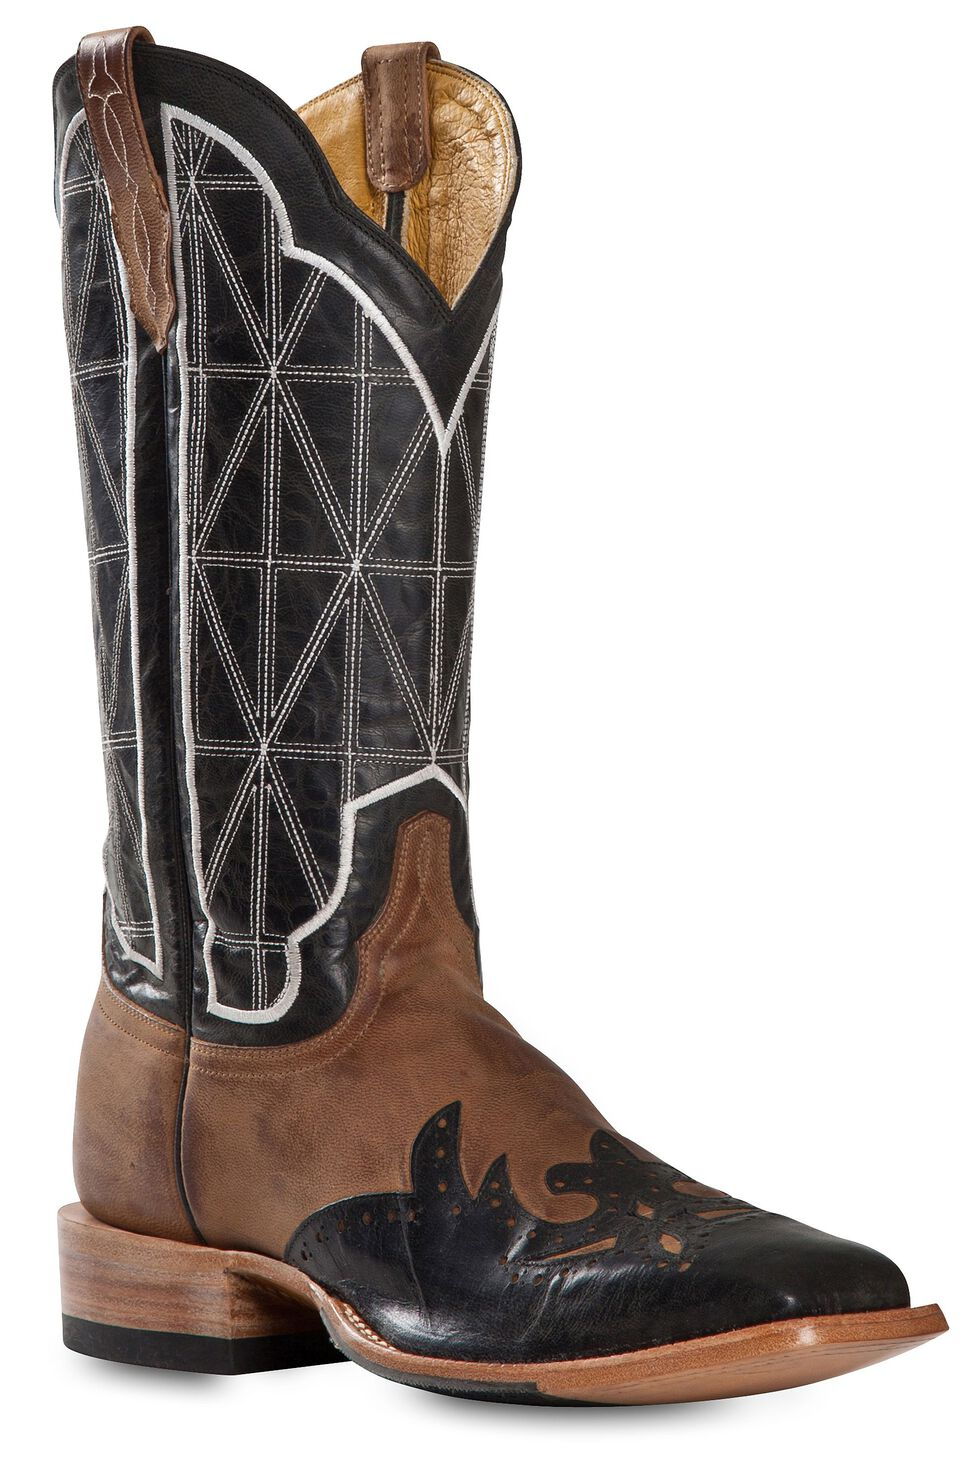 Cinch Classic Mad Dog Stained Glass Wingtip Cowboy Boots - Square Toe, Black, hi-res